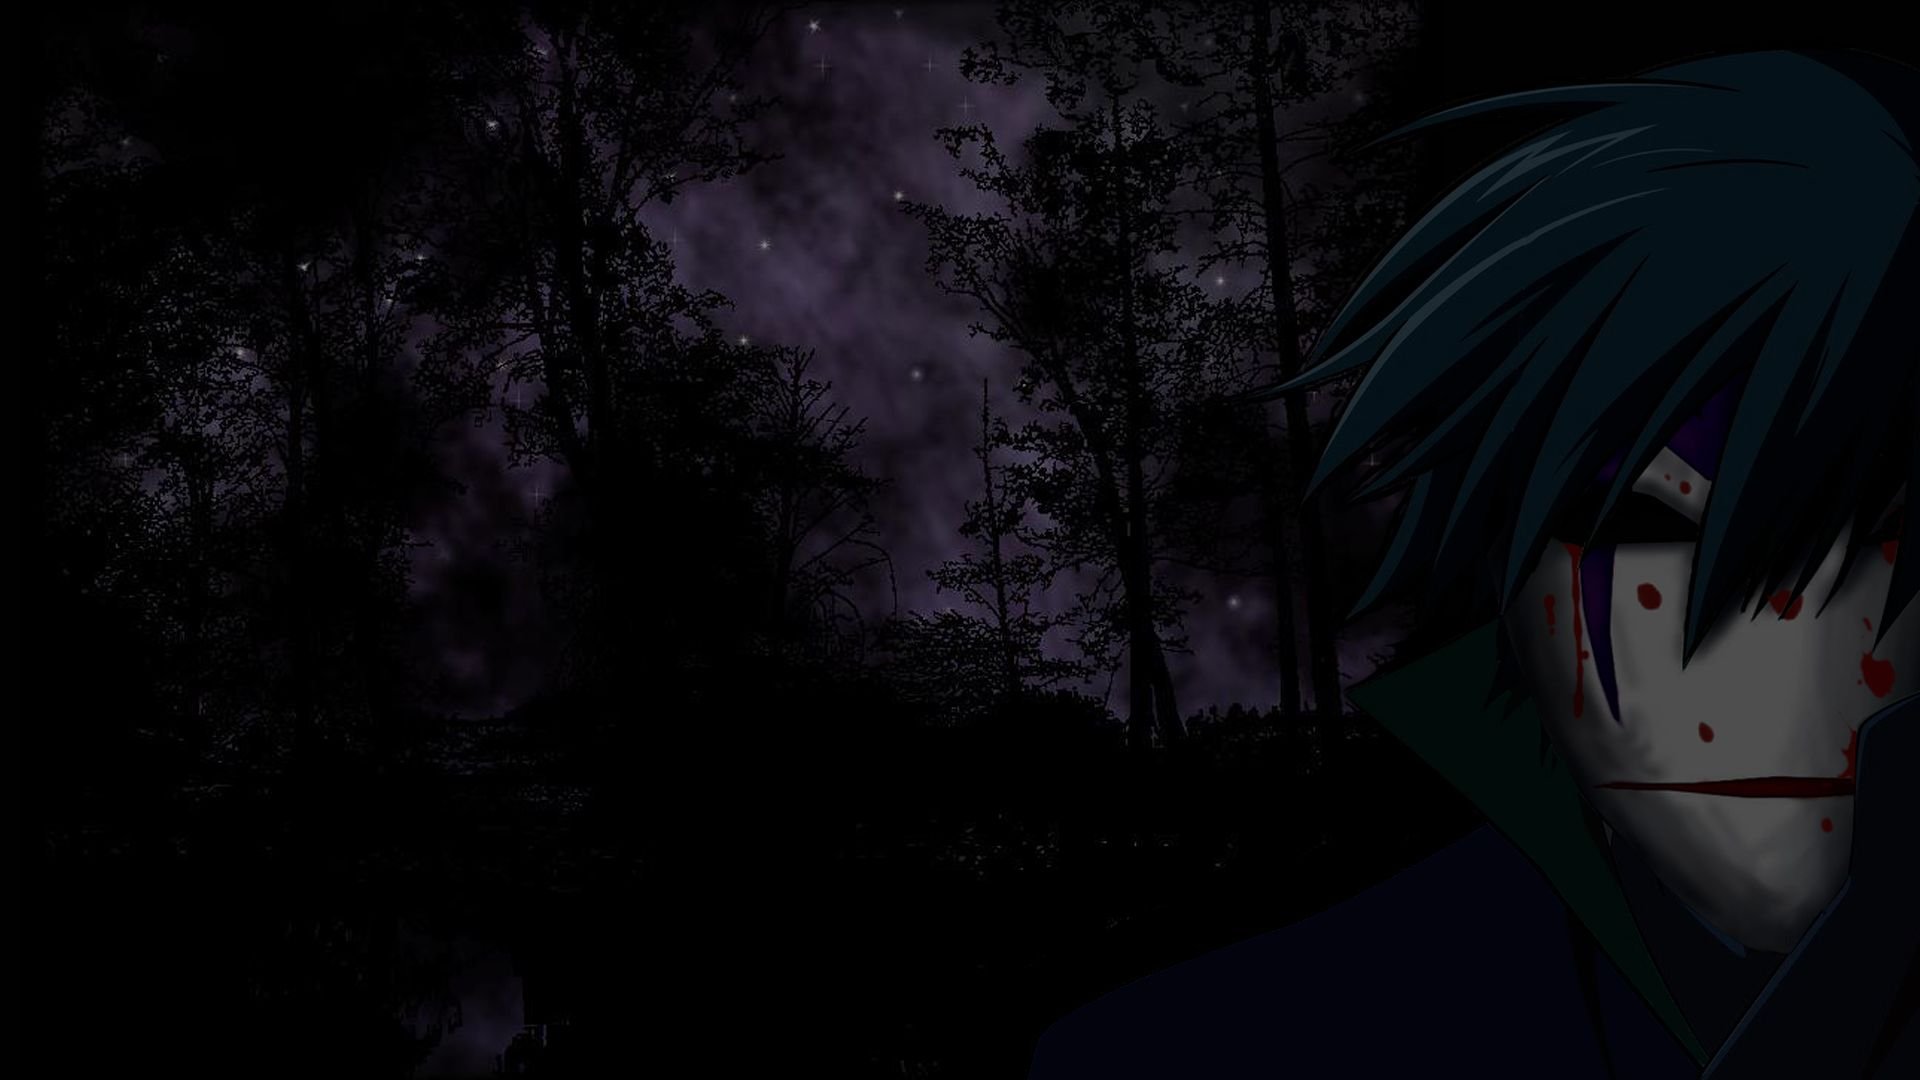 Darker Than Black Mask Wallpaper Posted By Ethan Peltier